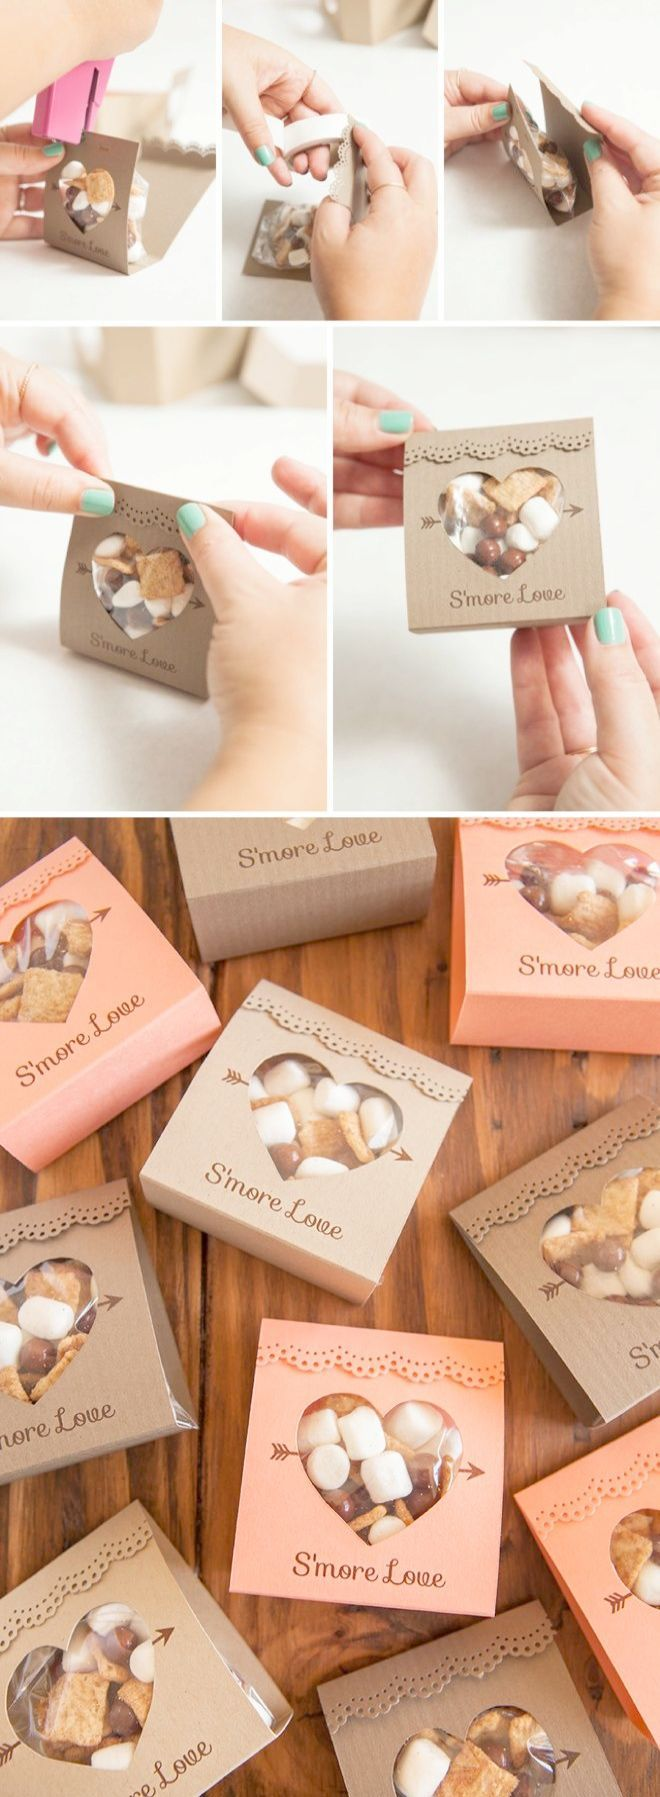 Terrific Wedding Favors Unlimited Coupon 2018 D Smores Wedding Favors Wedding Gift Favors Wedding Favors Cheap